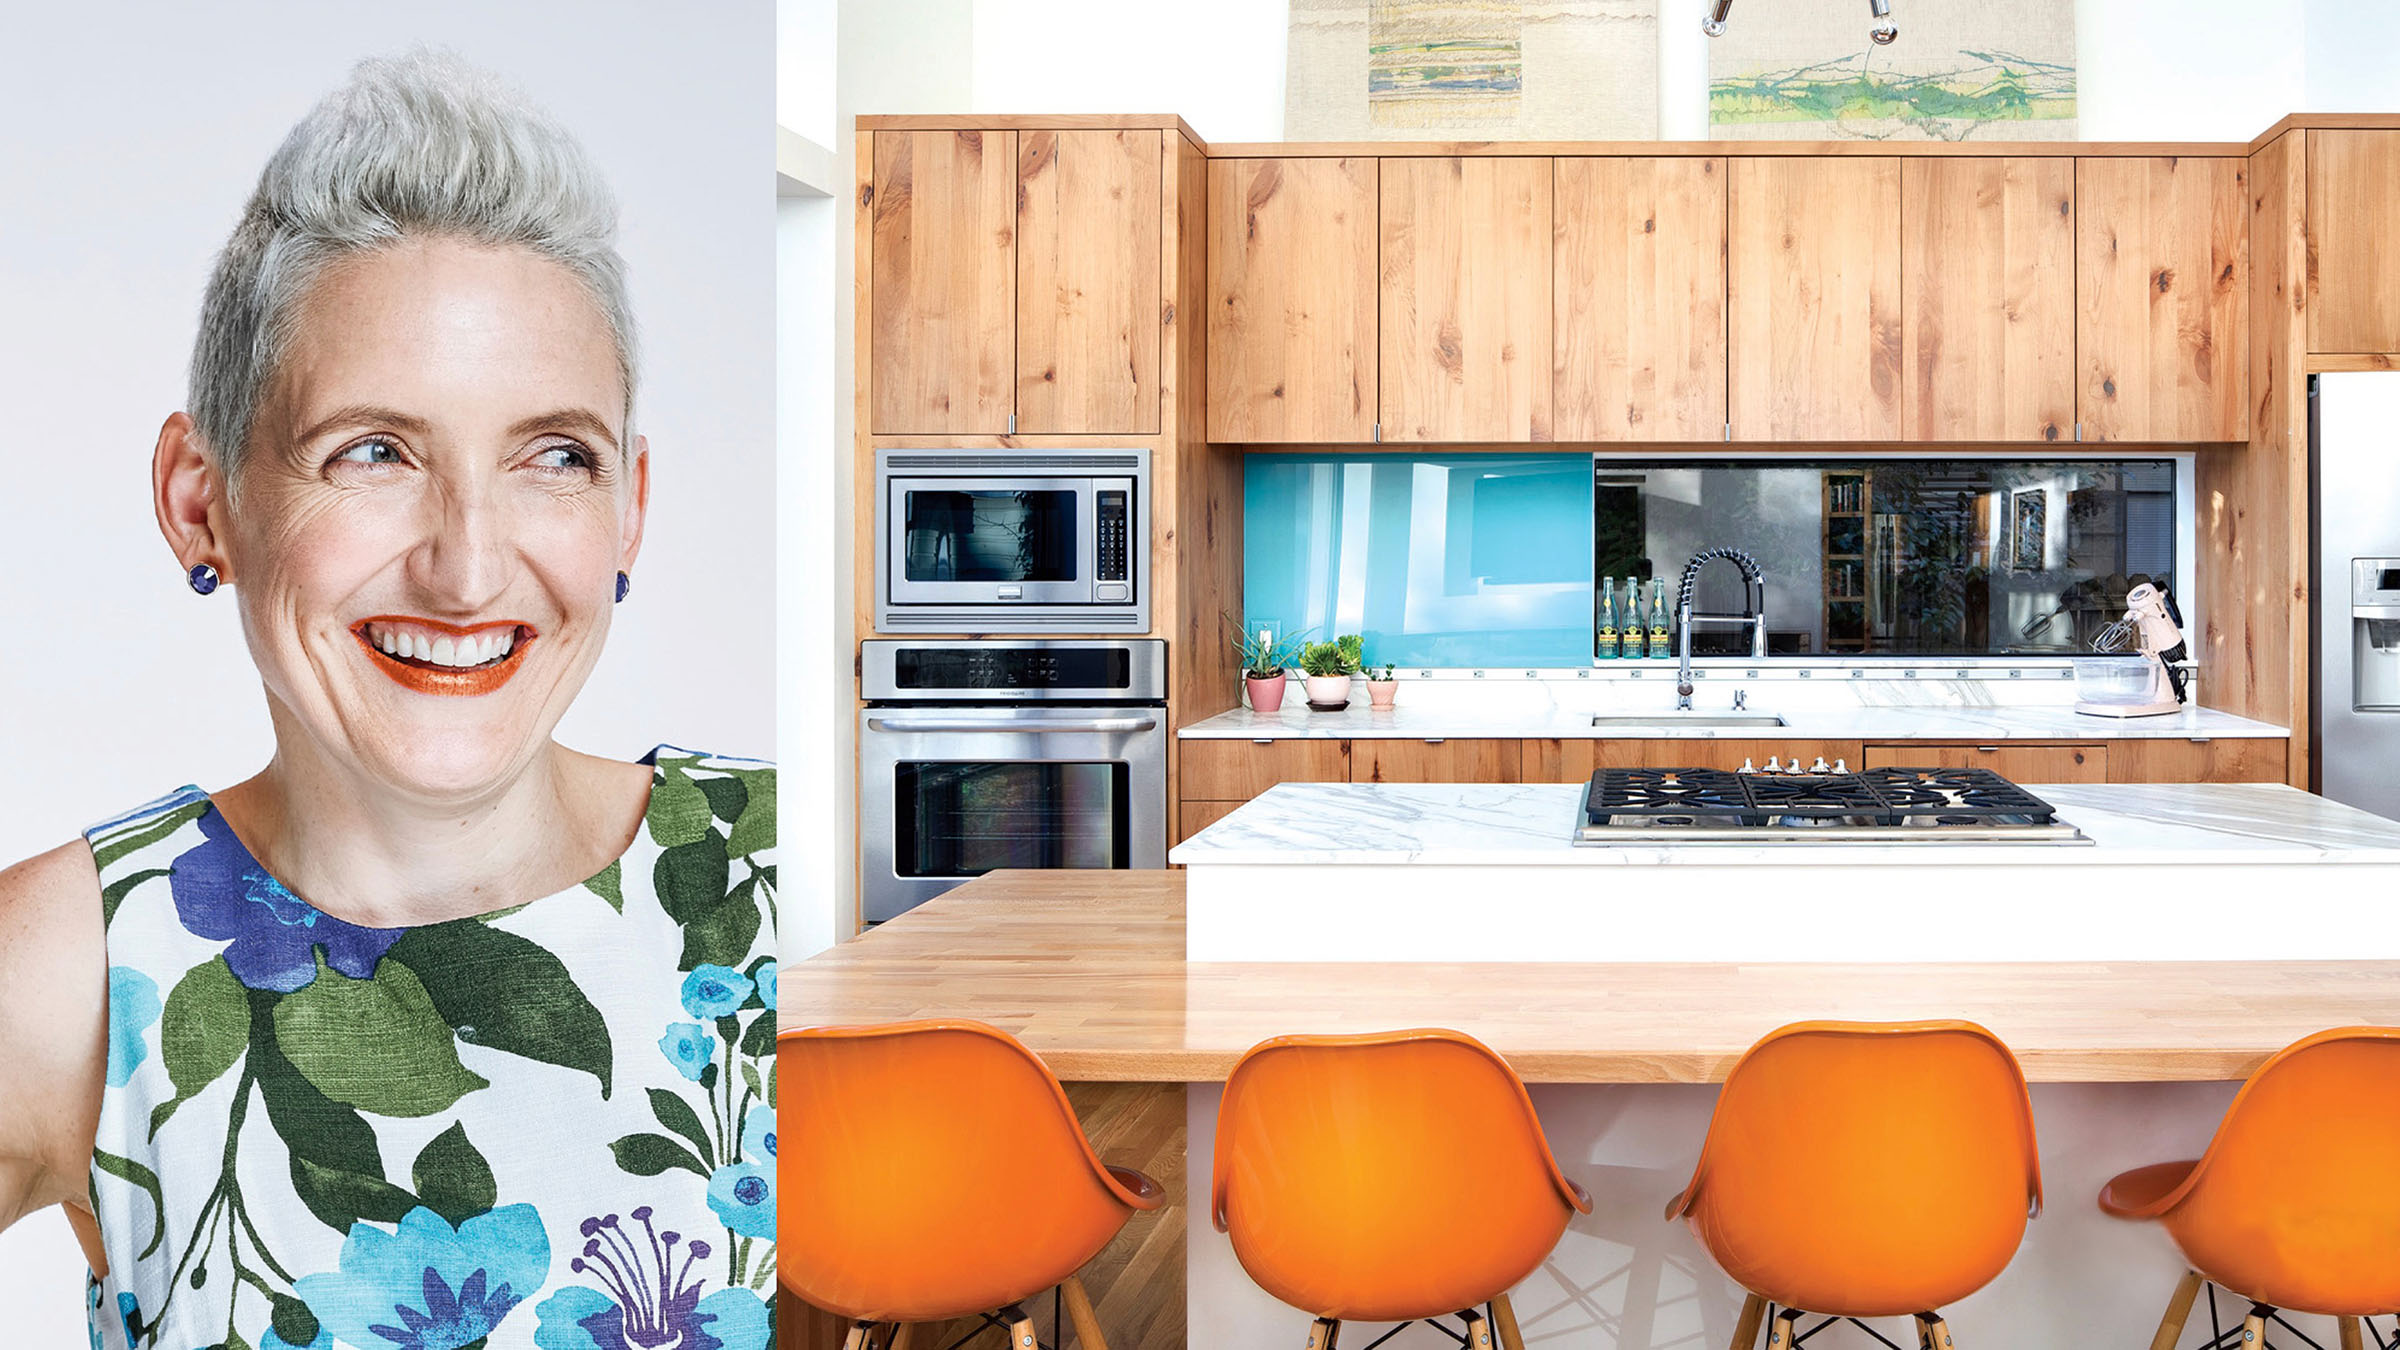 A side-by-side look at a home resident and her kitchen which draws attention to their similar styles.